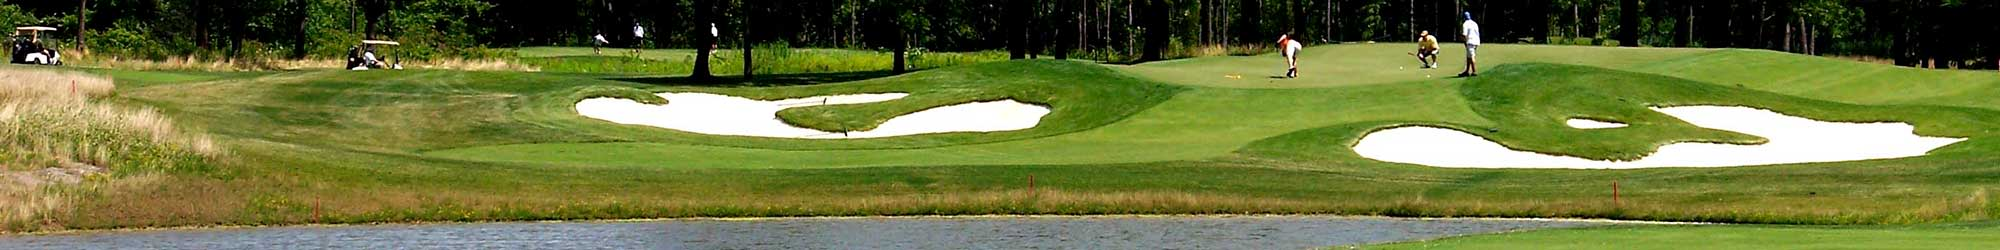 Reviews of The Fairways at Timber Banks in Baldwinsville